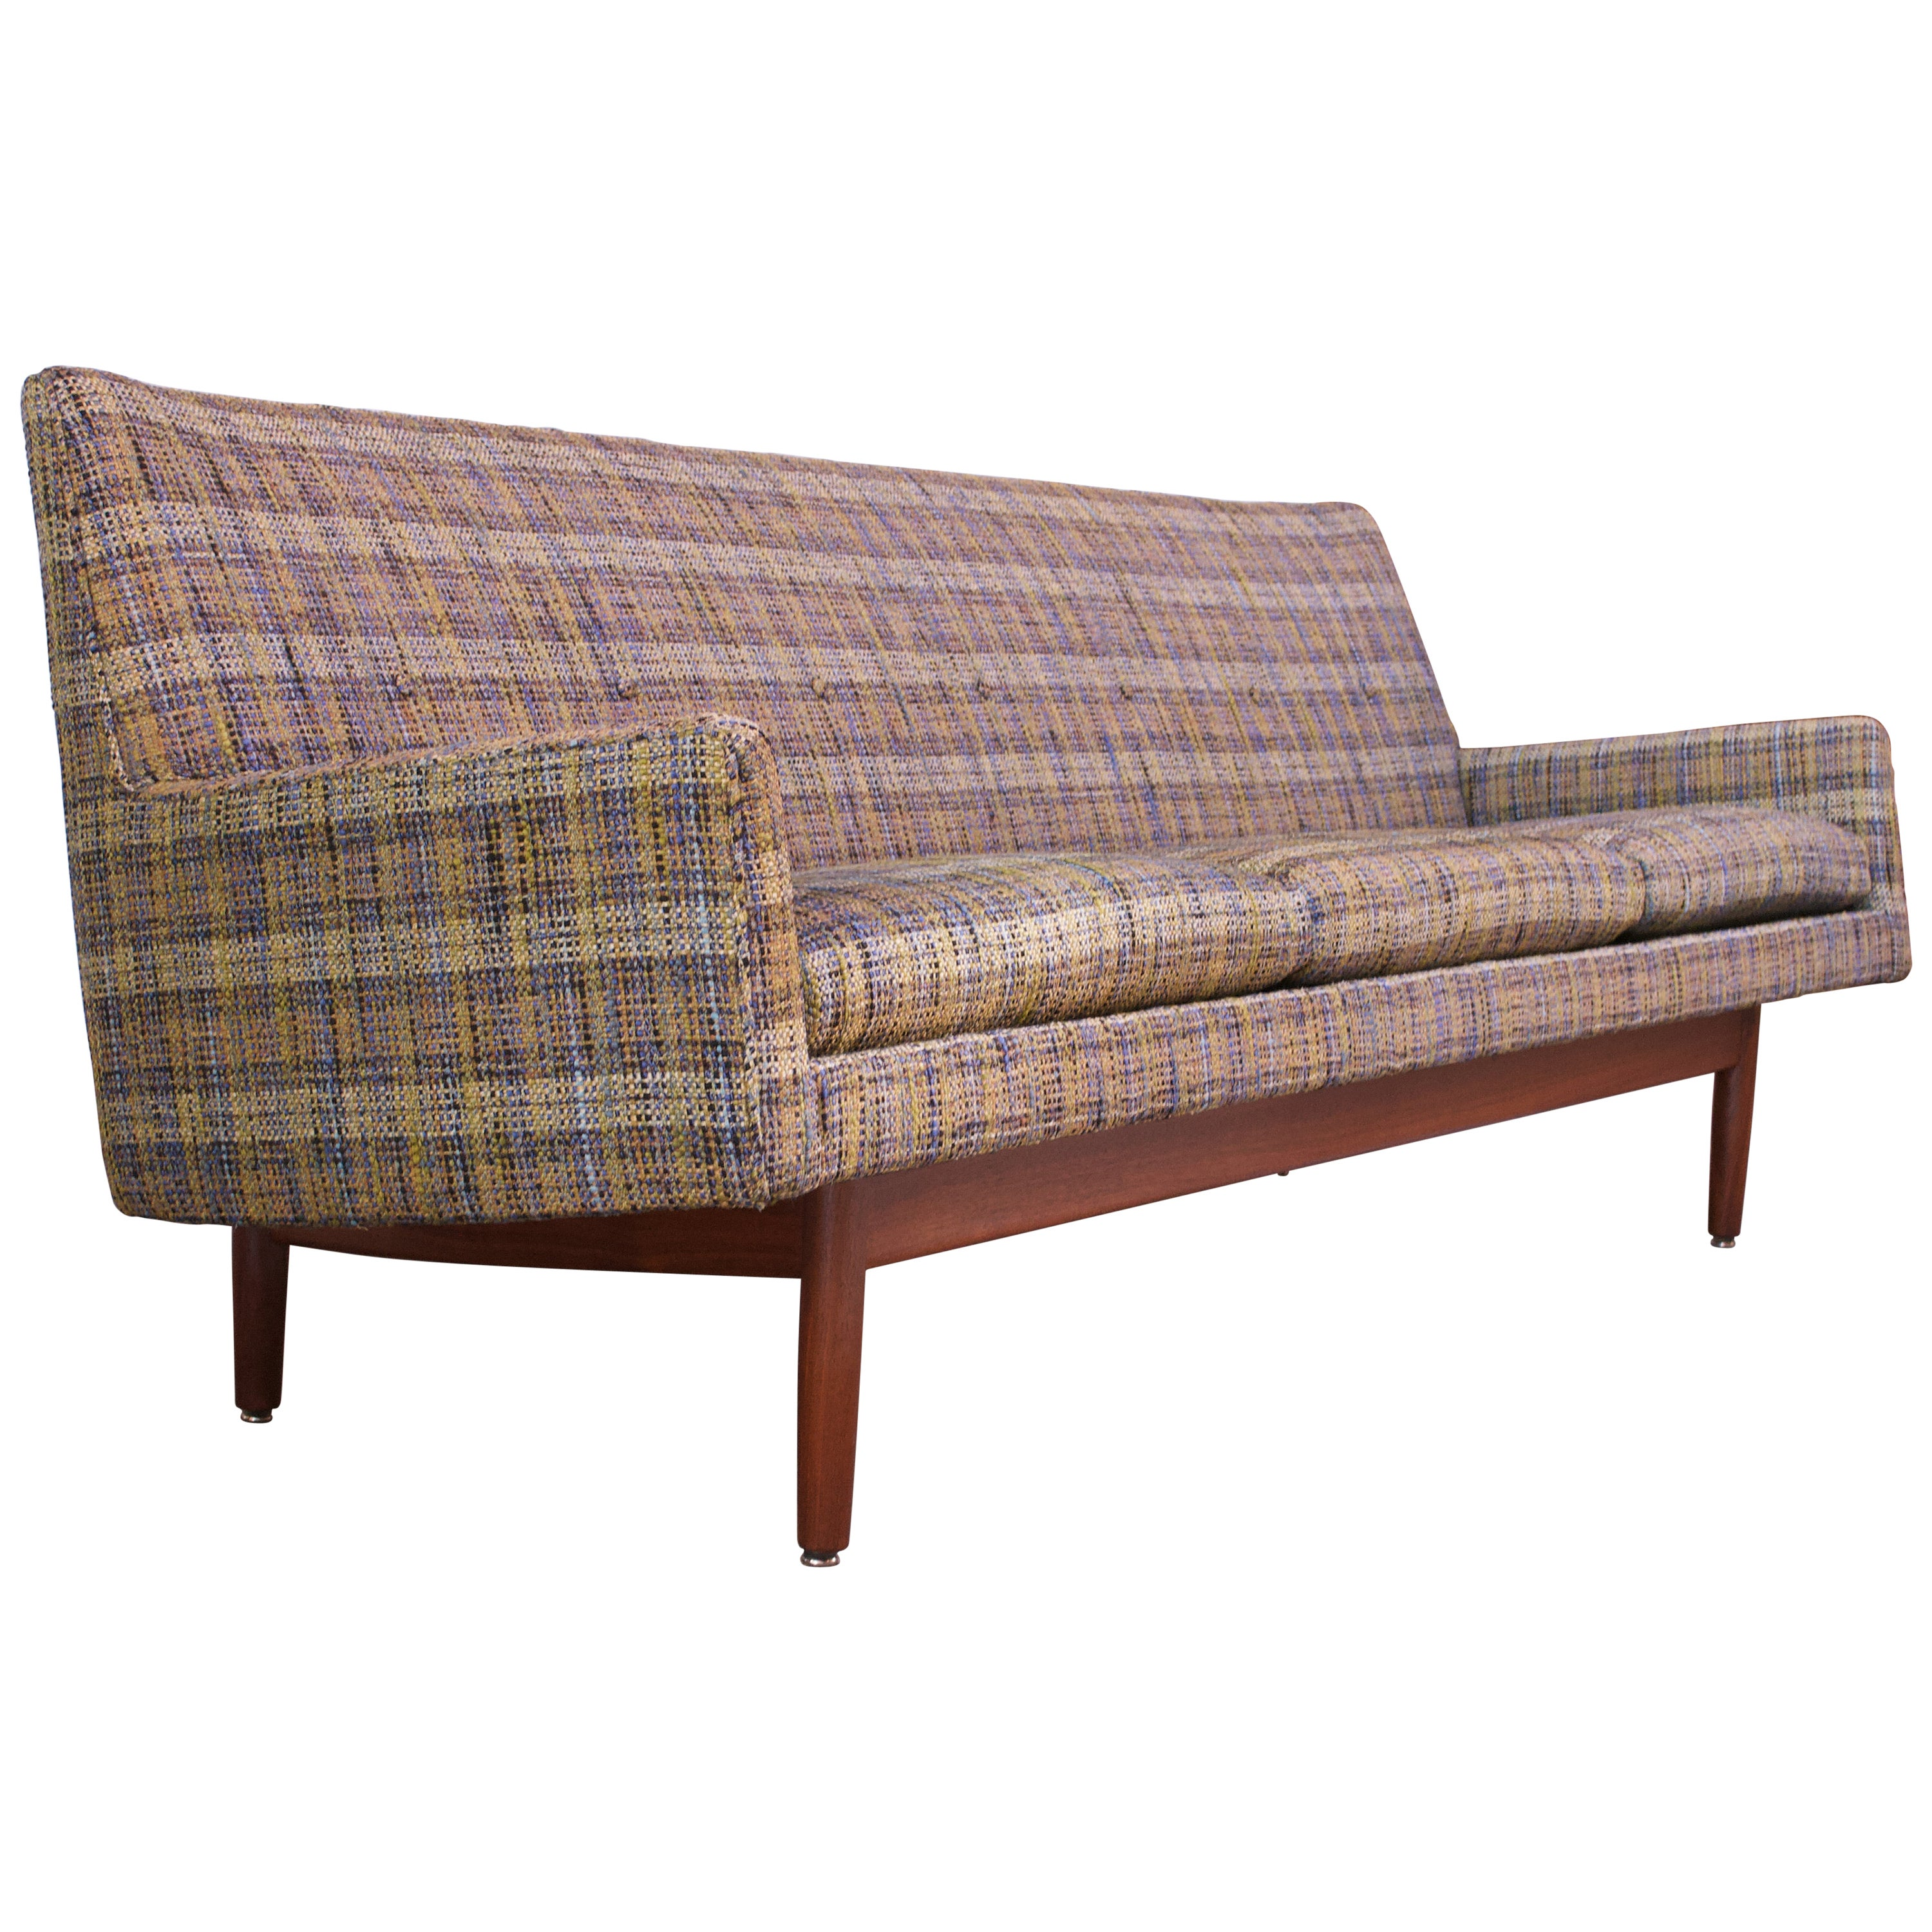 Jens Risom Floating Sofa in Walnut with Original Tweed Upholstery